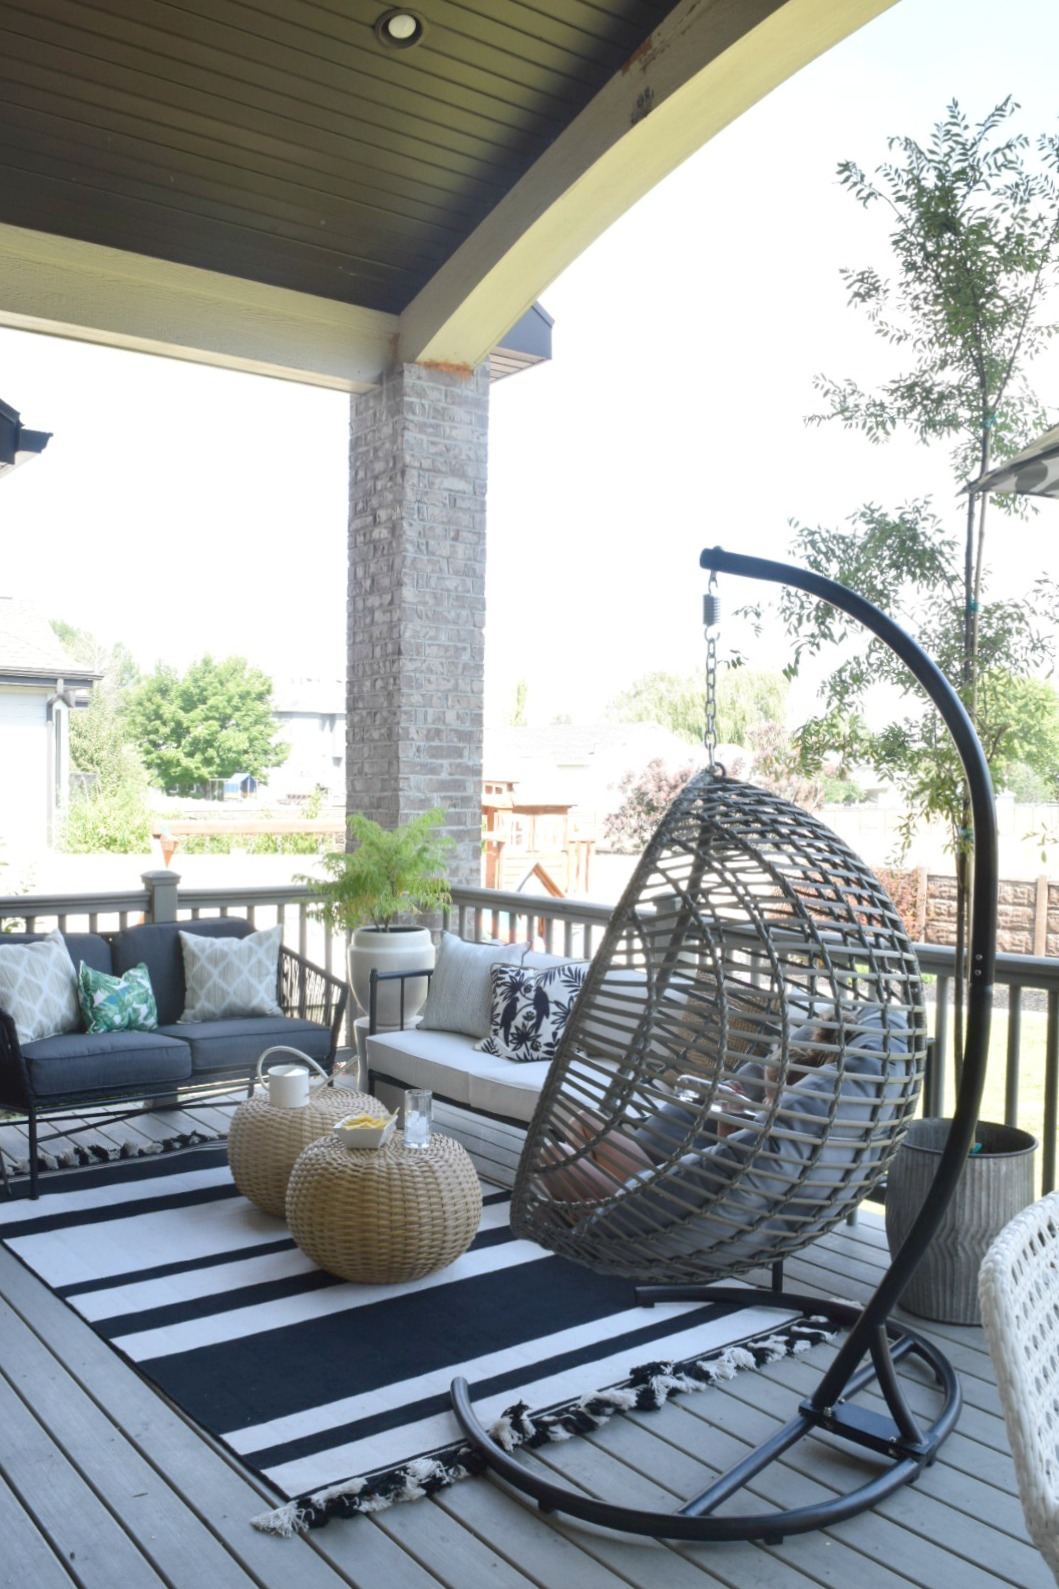 Hanging Patio Chair Outdoor Patio And Living Space With Hanging Chair Nesting With Grace